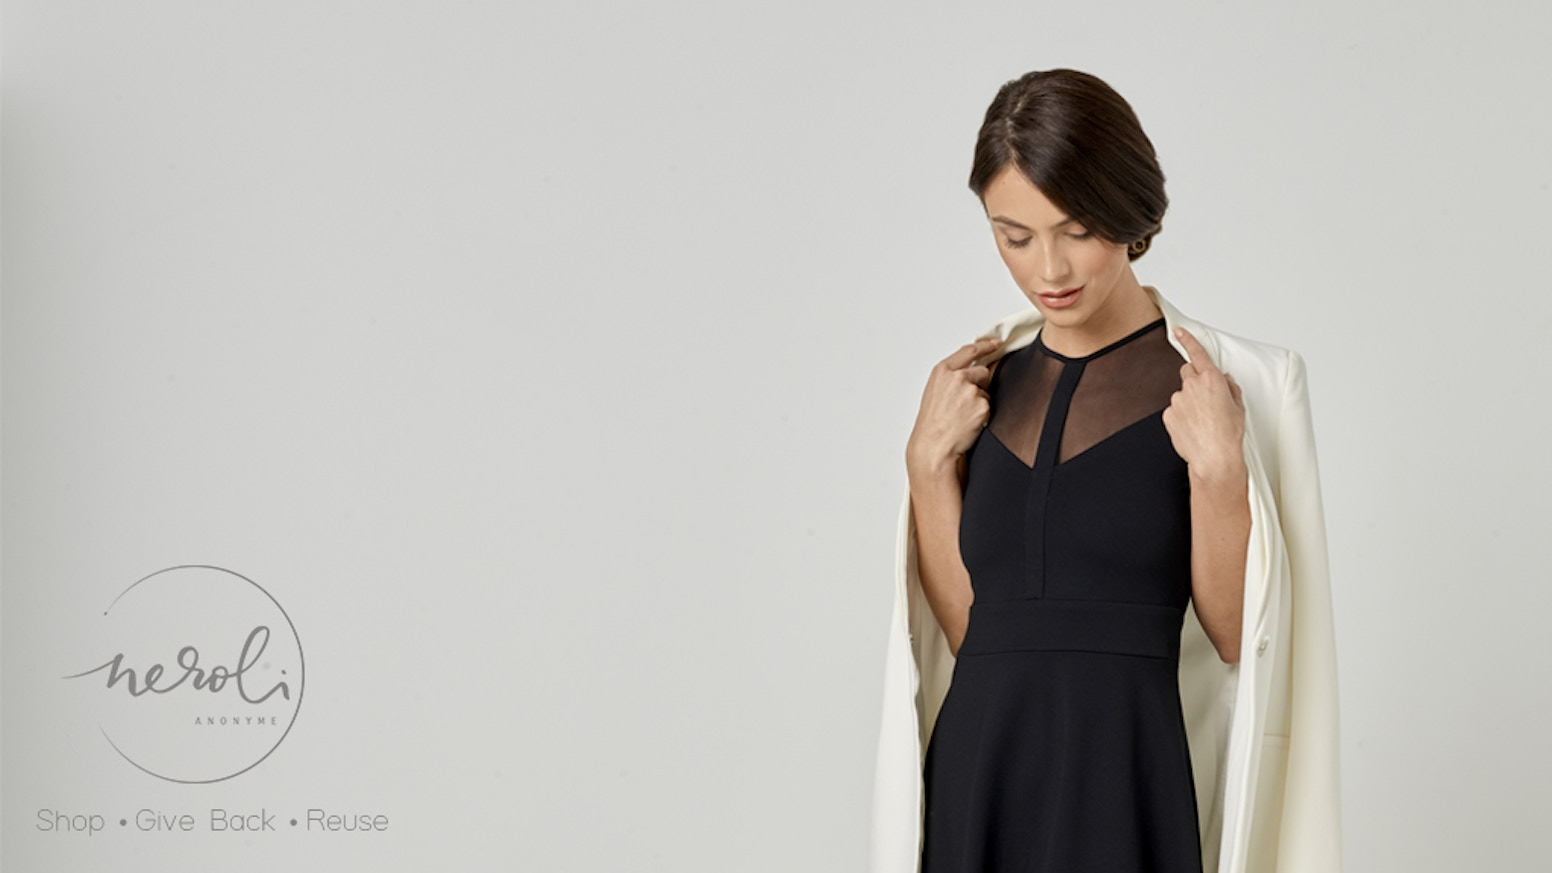 1 Dress, 3 Styles. The perfect dress from work hour to happy hour. Say NO to fast fashion and join our slow fashion revolution.